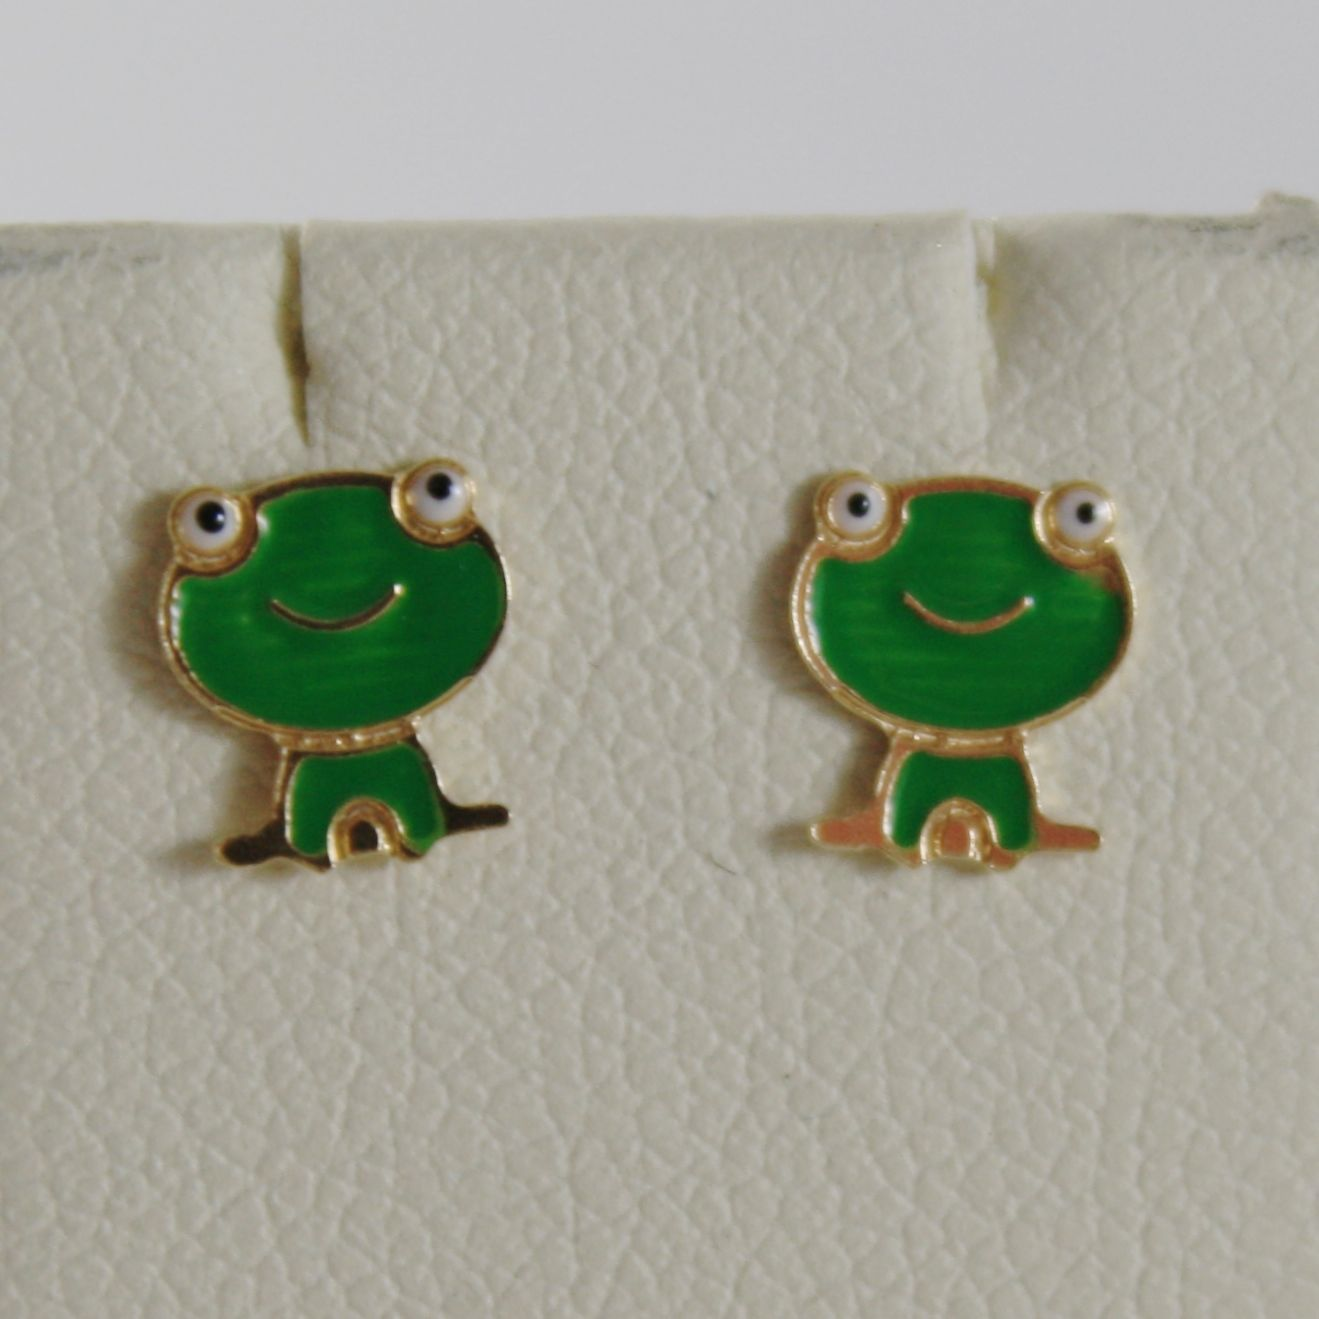 18K YELLOW GOLD CHILD GREEN FROG FROGS MINI EARRINGS GLAZED, FLAT, MADE IN ITALY